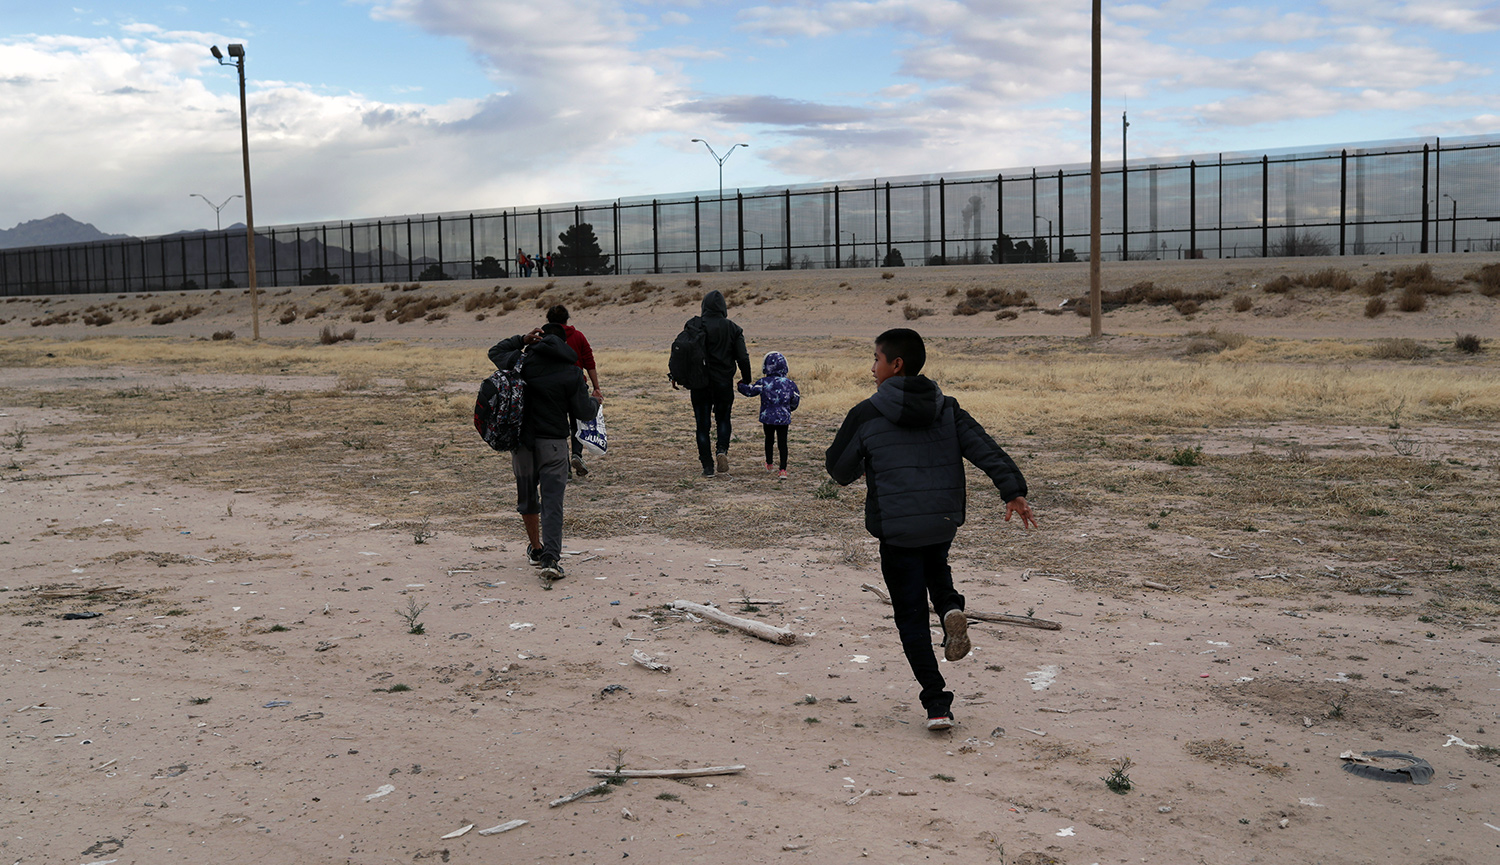 Central American immigrants walk toward the border fence after crossing the Rio Grande from Mexico on February 1, 2019 in El Paso, Texas. John Moore/Getty Images.